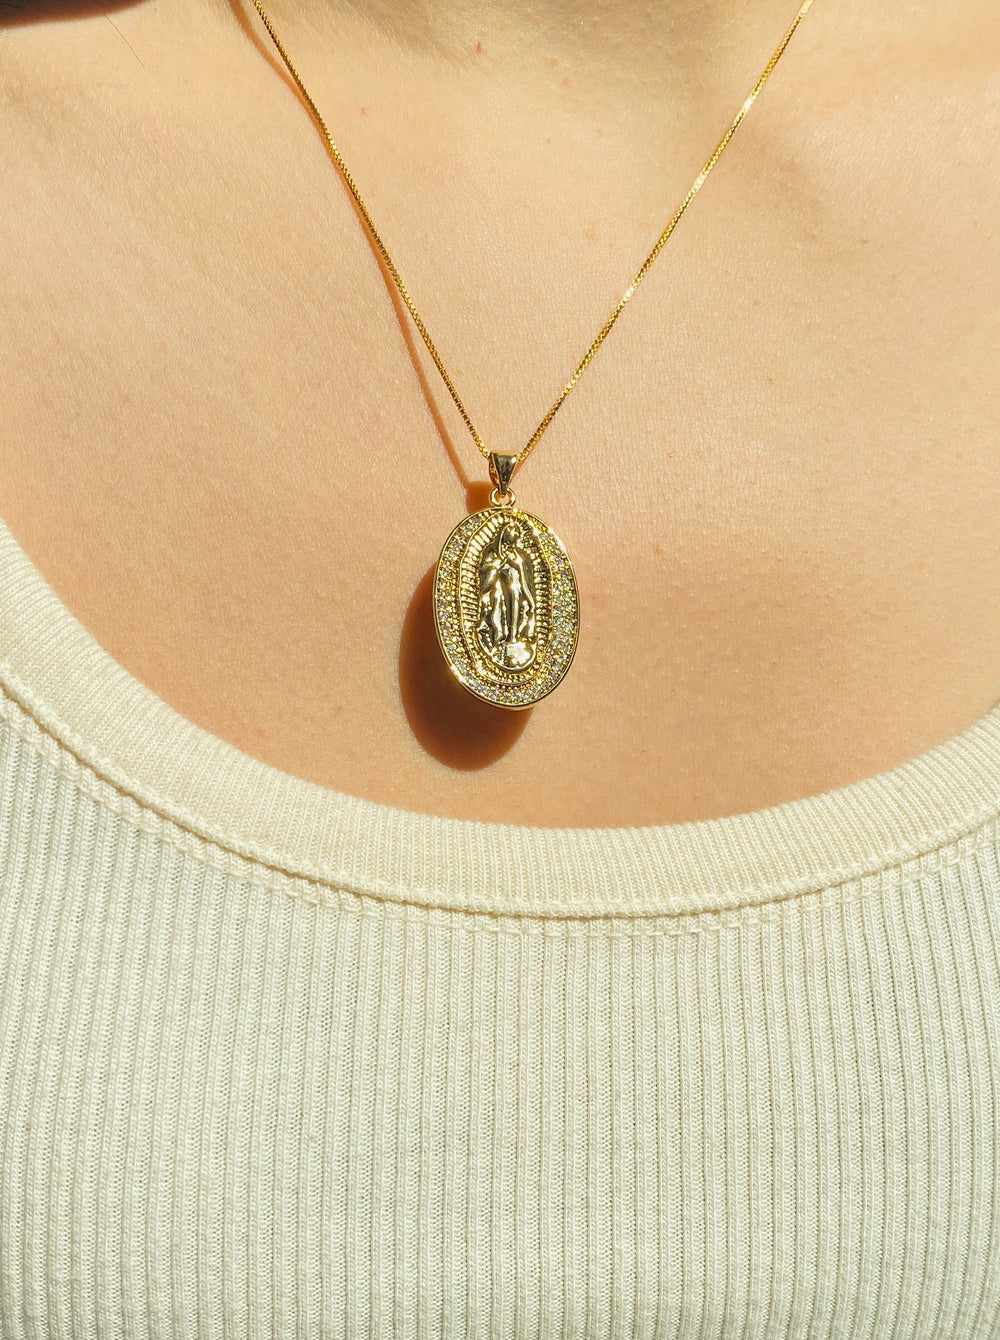 THE OVAL PAVE GUADALUPE EMBOSSED PENDANT NECKLACE